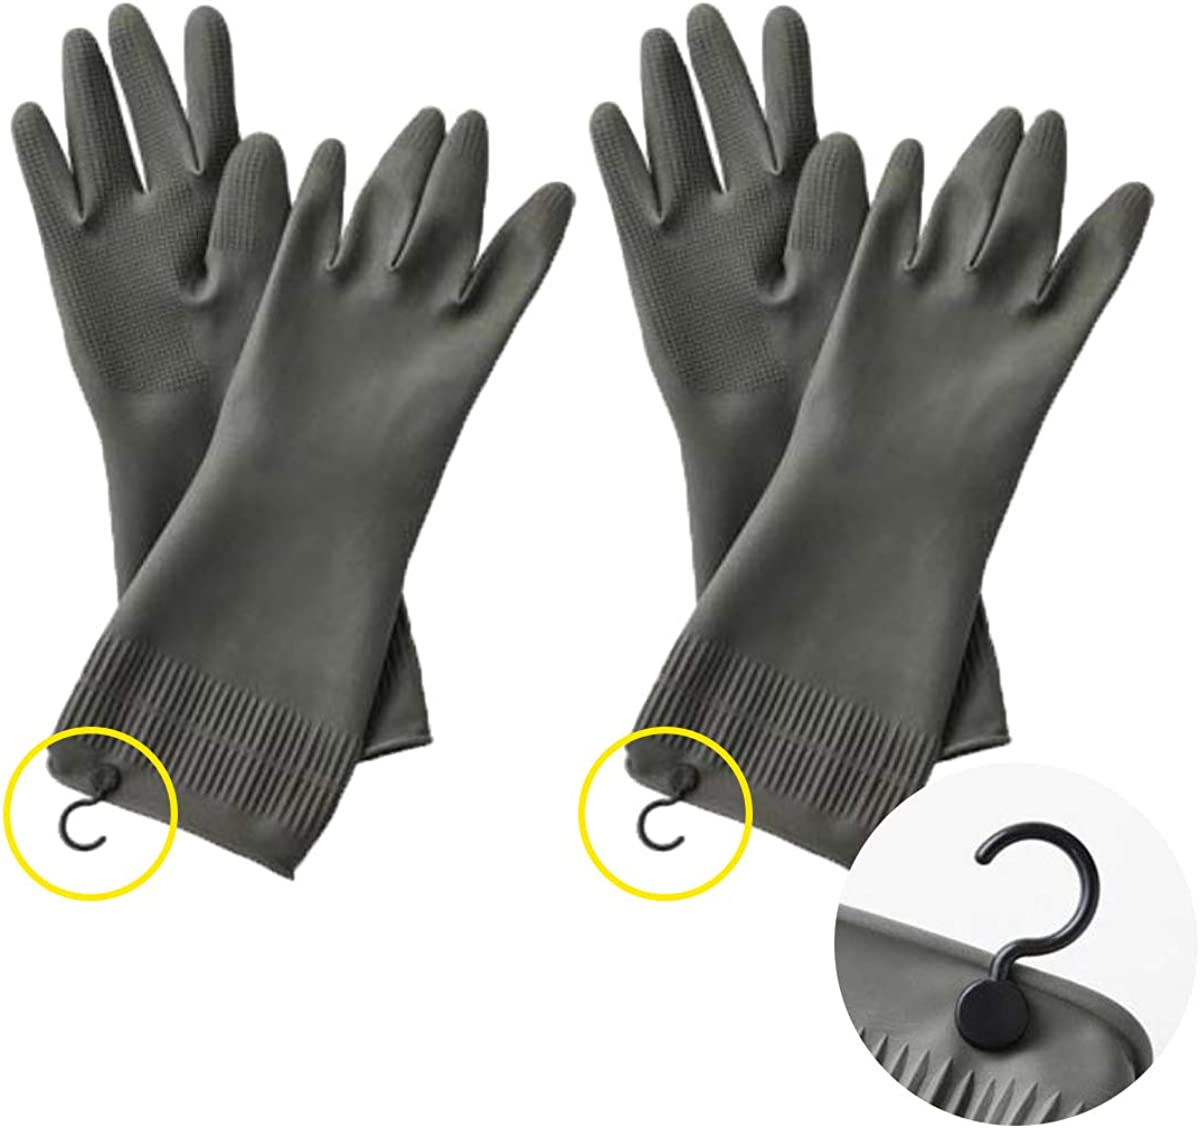 Dishwashing Gloves low-pricing with Hanging Hooks – 2 Dish Glo of Pairs New popularity